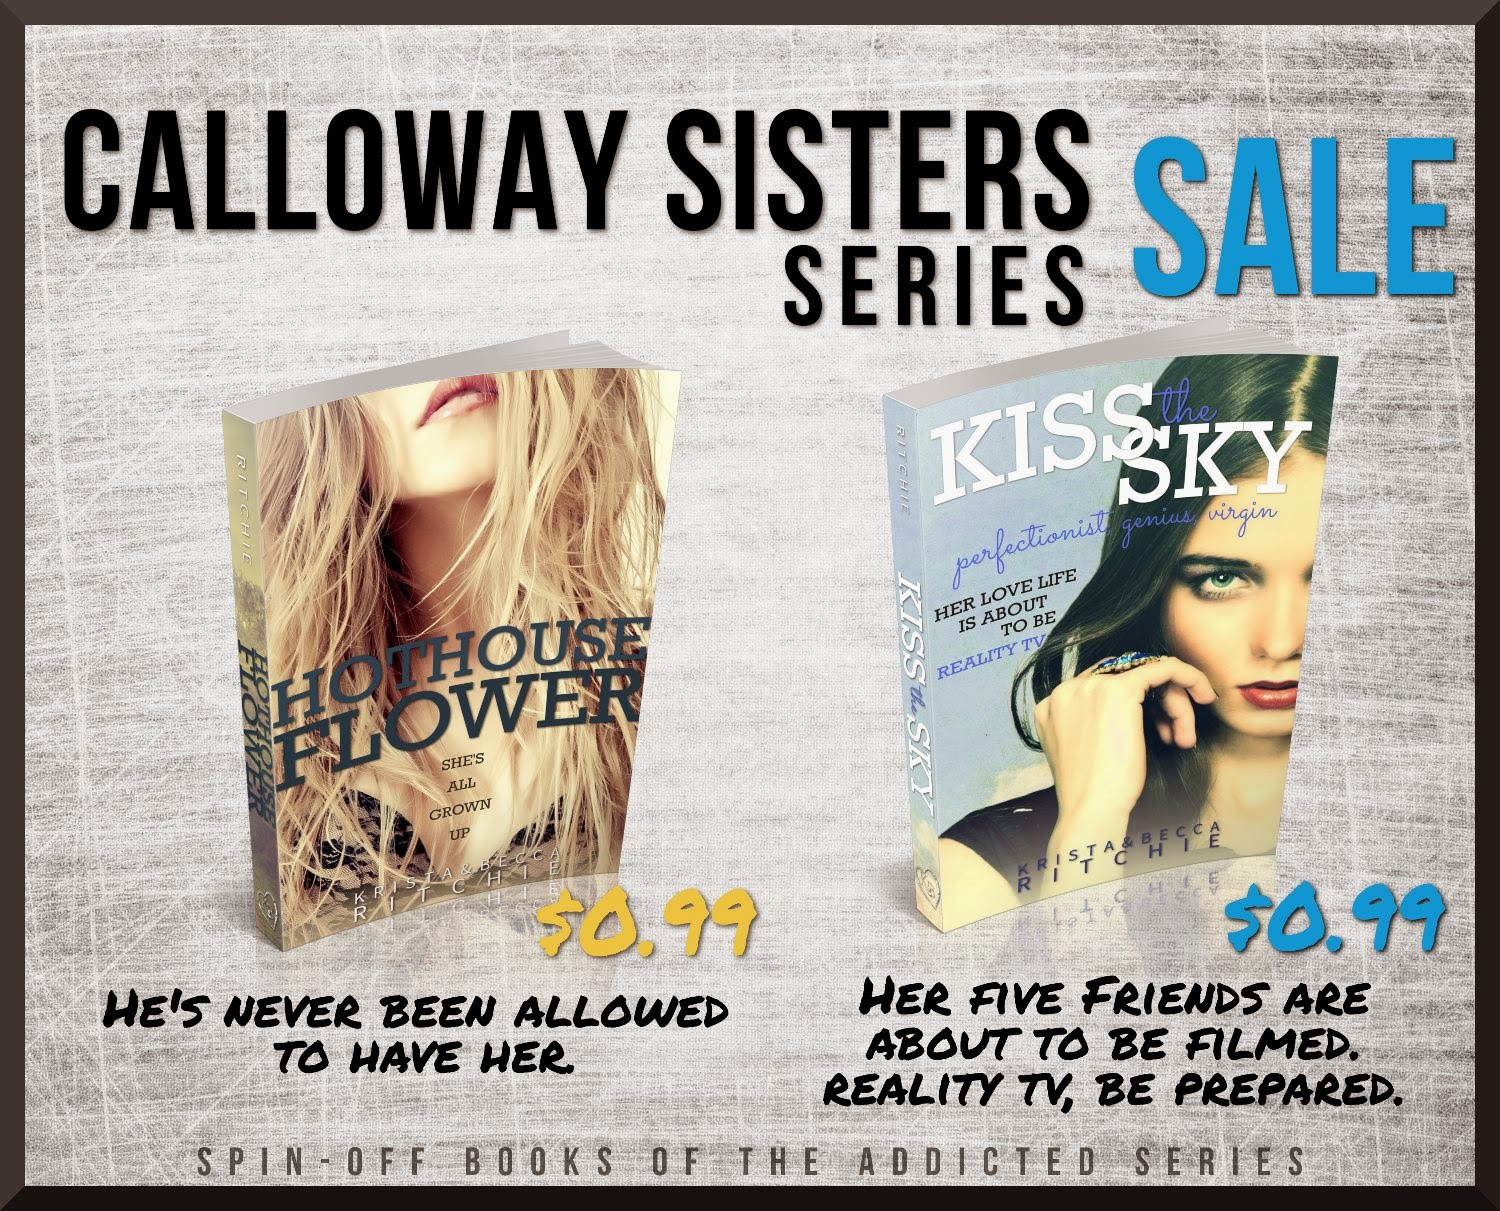 KISS THE SKY ➜ http://amzn.to/1kZzh3x ($0.99 SALE) HOTHOUSE FLOWER ➜  http://amzn.to/1pASCoD ($0.99 SALE)